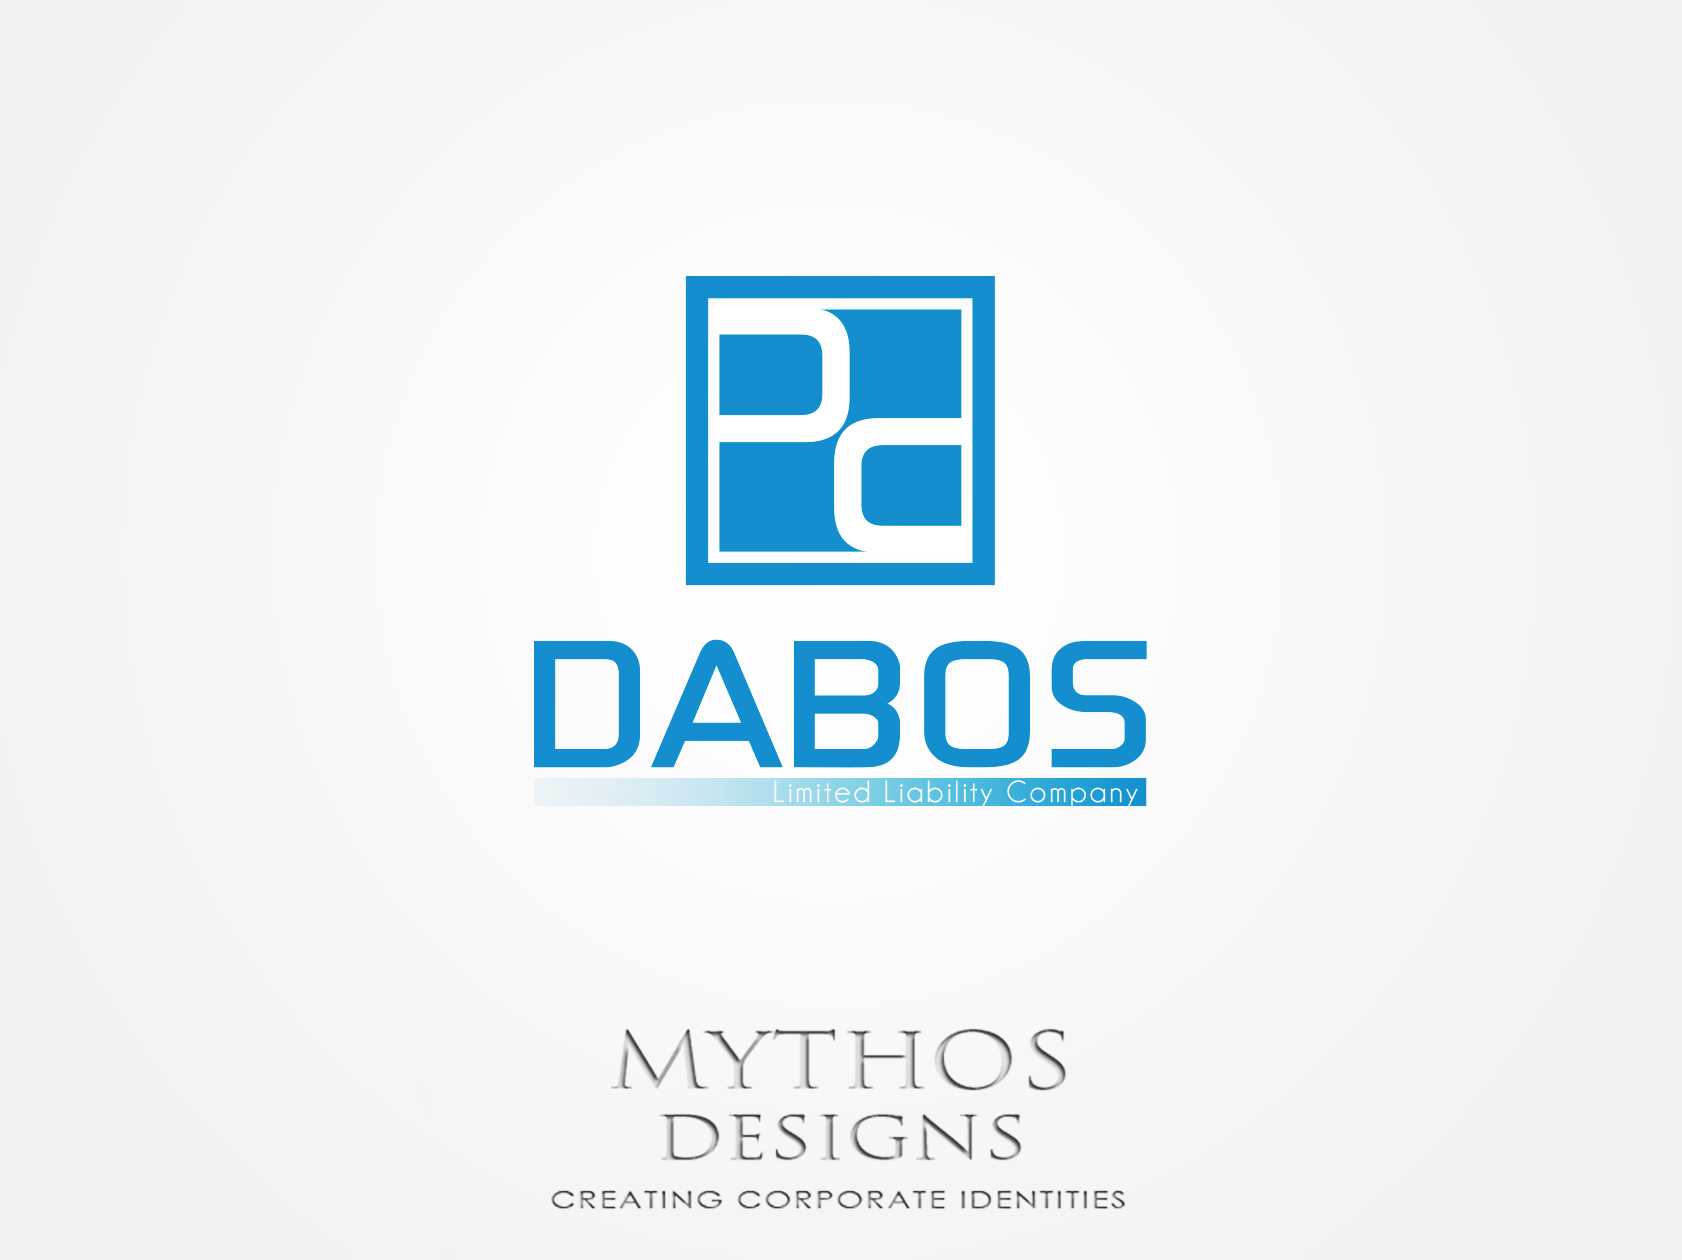 Logo Design by Mythos Designs - Entry No. 37 in the Logo Design Contest Imaginative Logo Design for DABOS, Limited Liability Company.